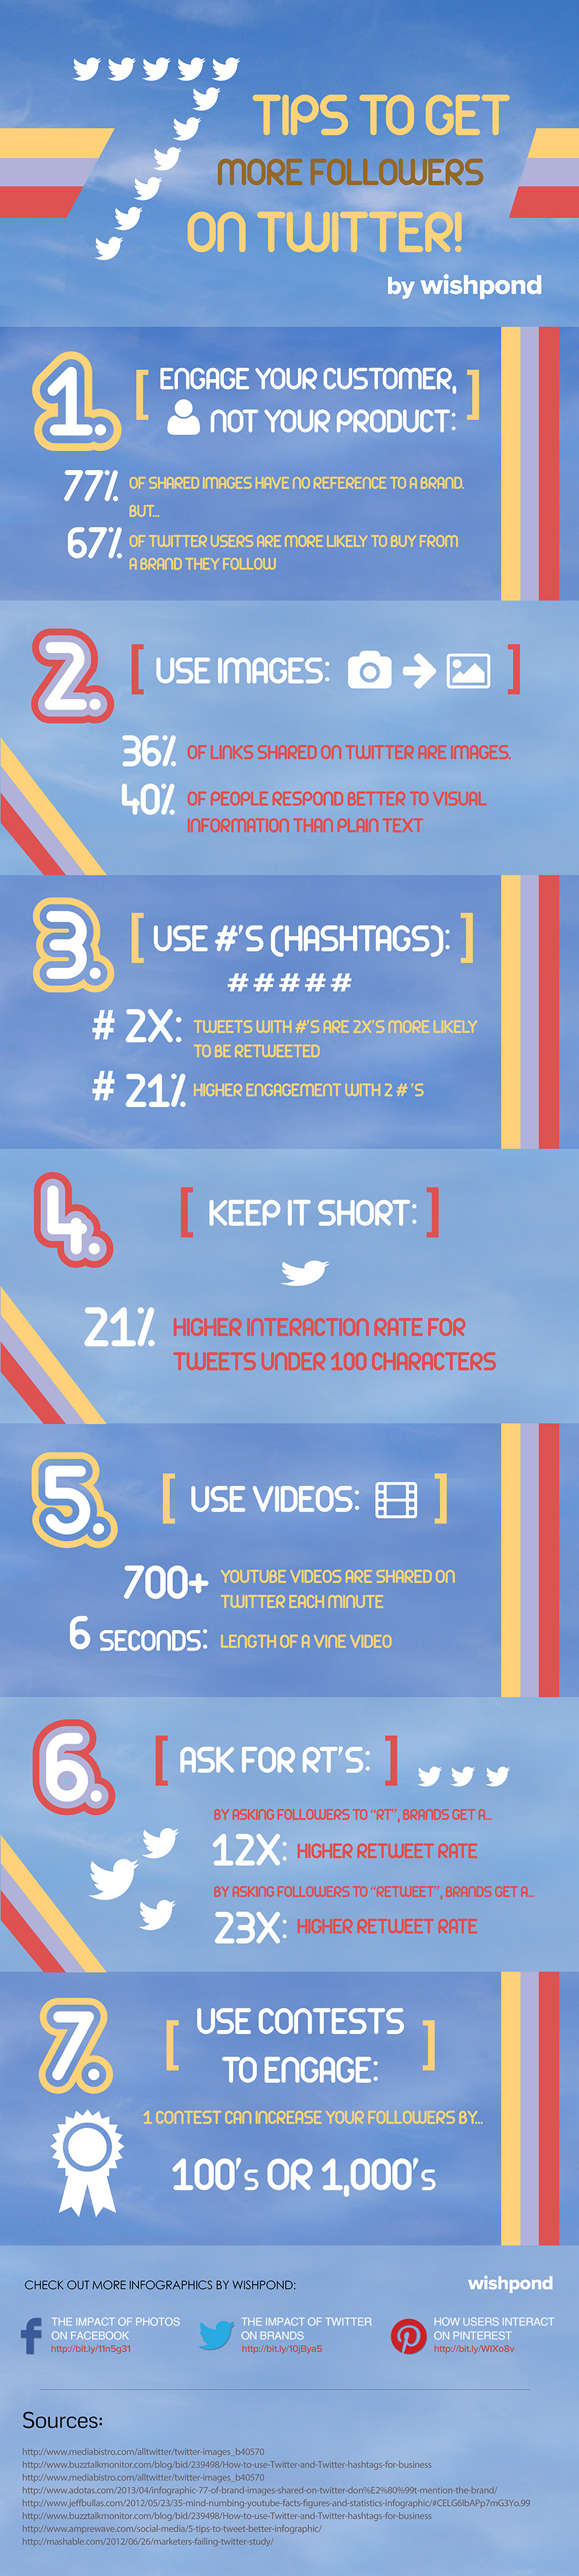 Infographic 7 Tips to Get More Followers on Twitter